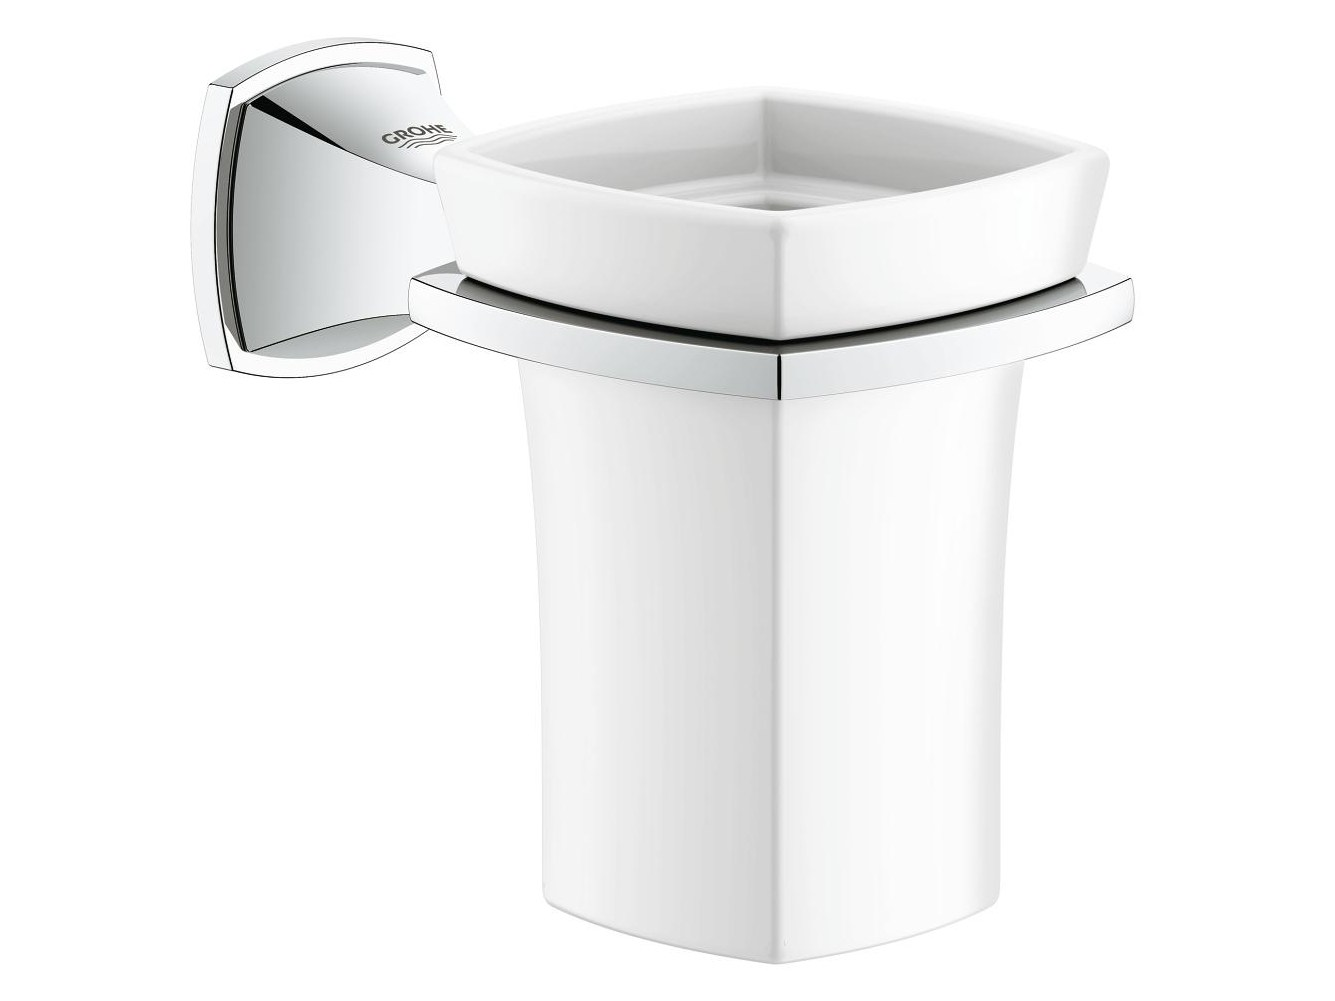 Grohe bathroom accessories - Grohe Bathroom Accessories 59